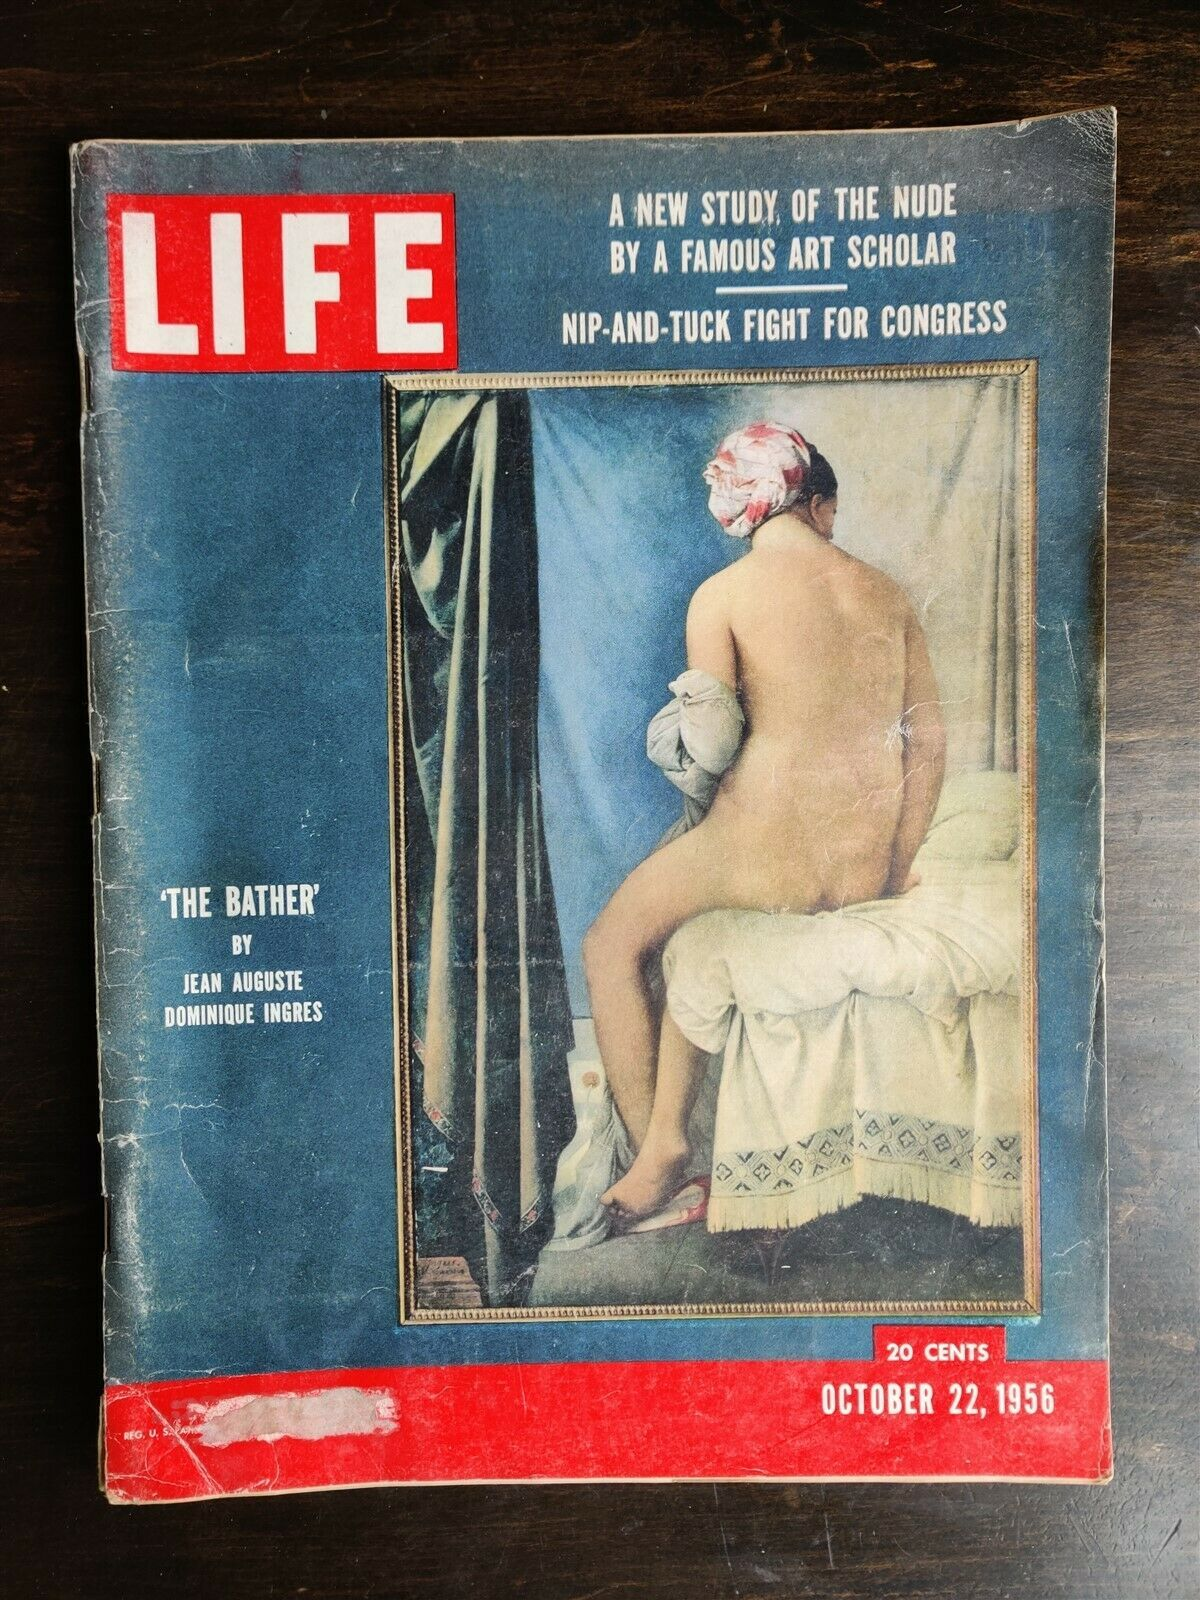 Primary image for Life Magazine October 22, 1956 - Nude Art - Schizophrenia- US Steel Industry OC